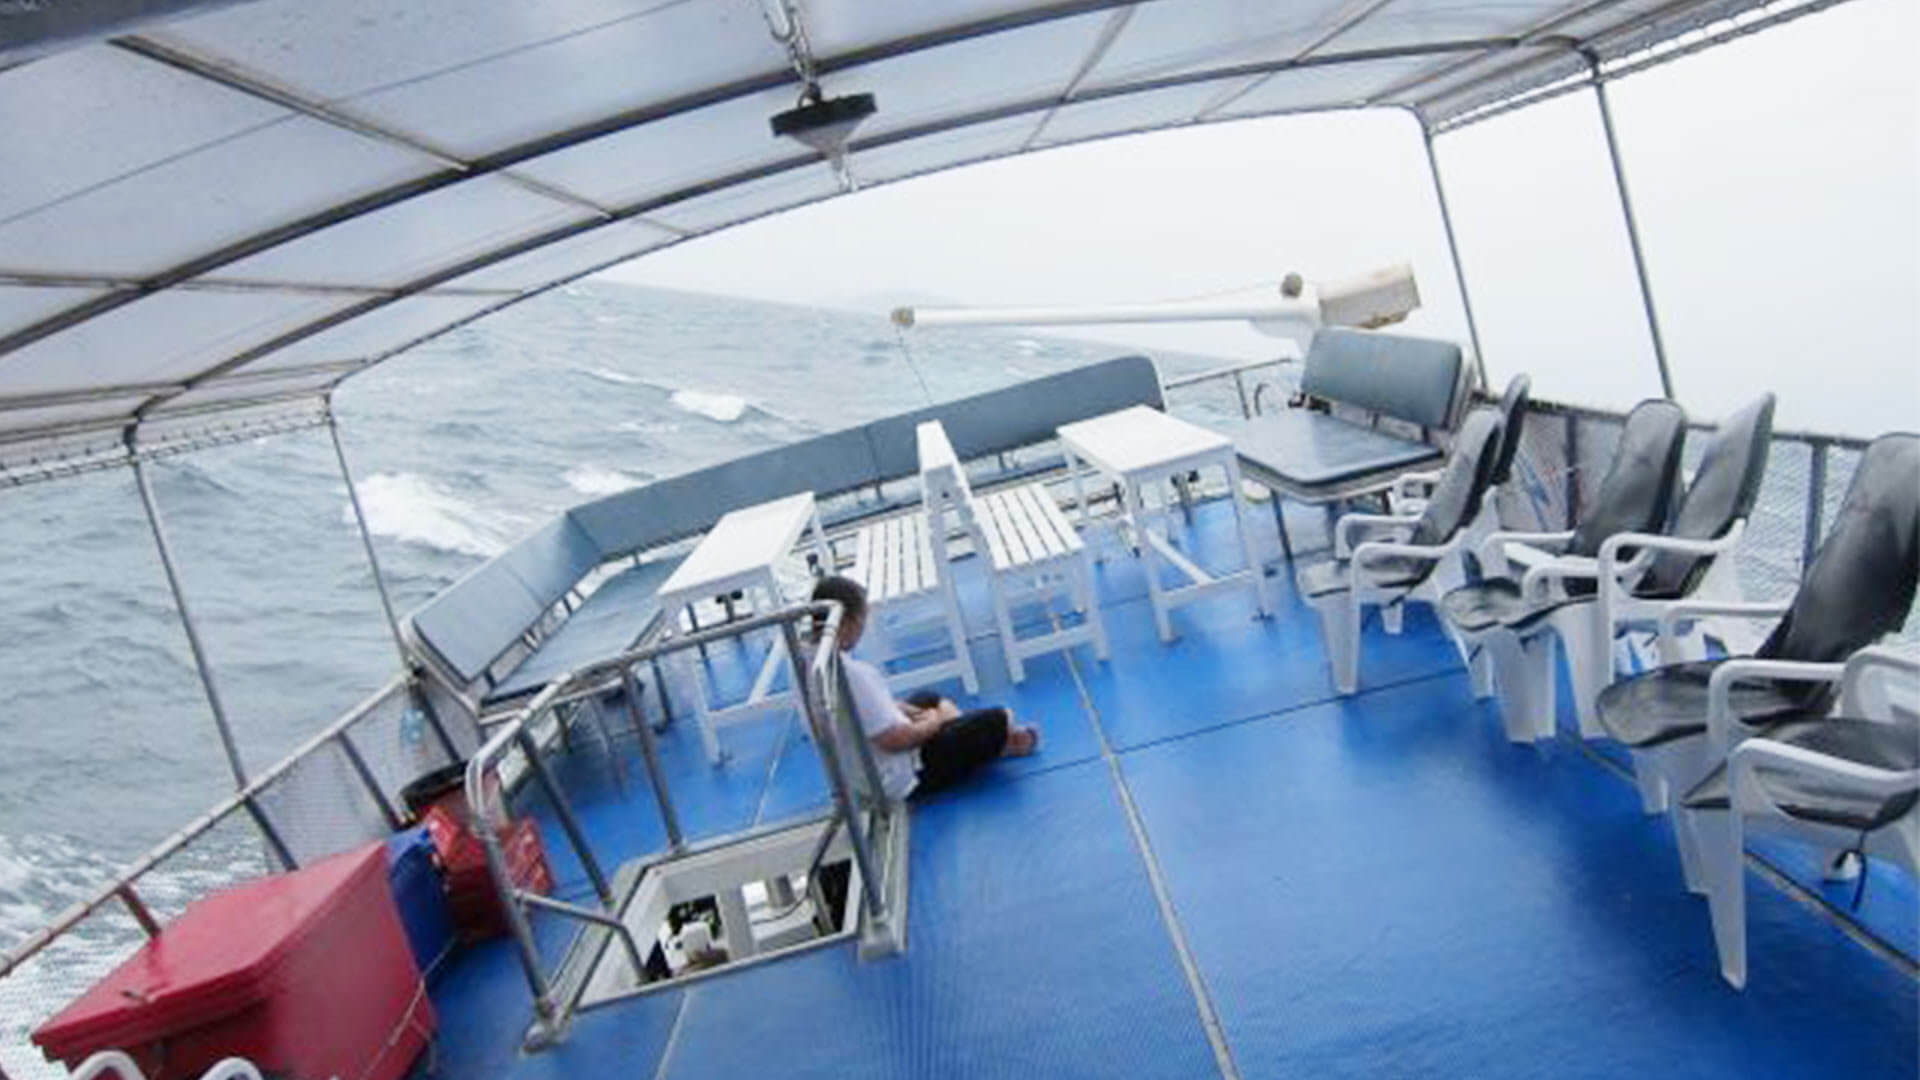 Tips on How to Prevent Seasickness